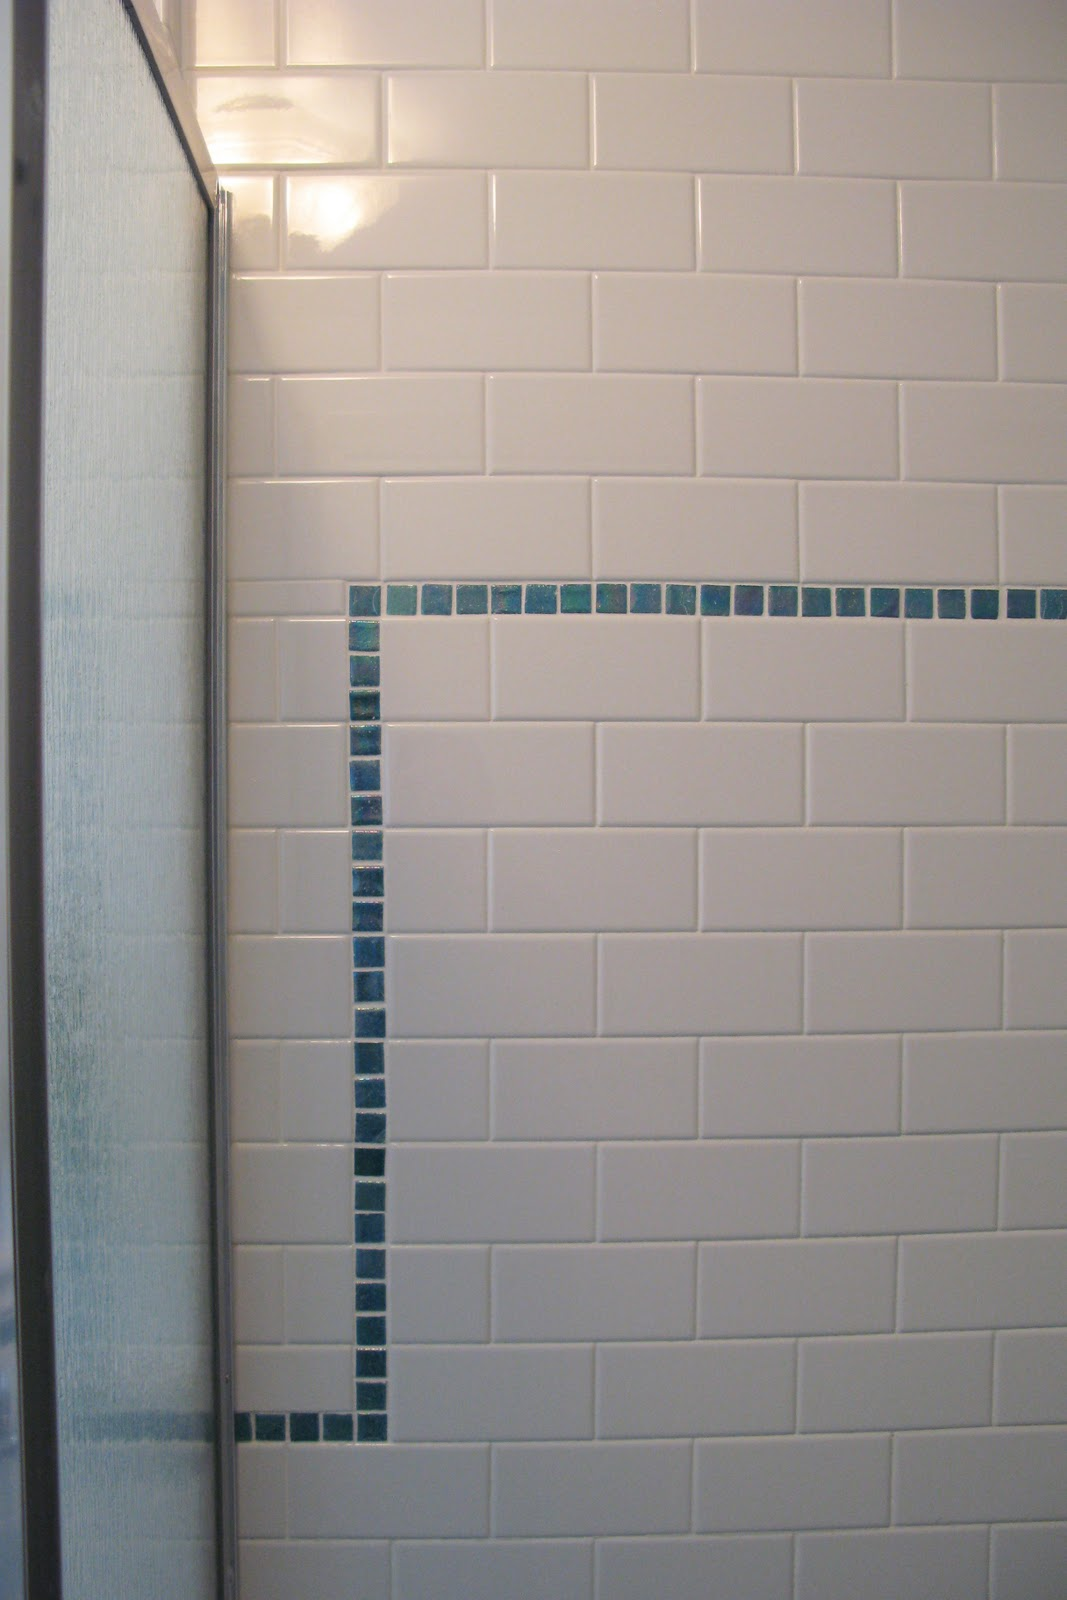 Justgrand Original 1930s Hall Bathroom Remodel Before And After